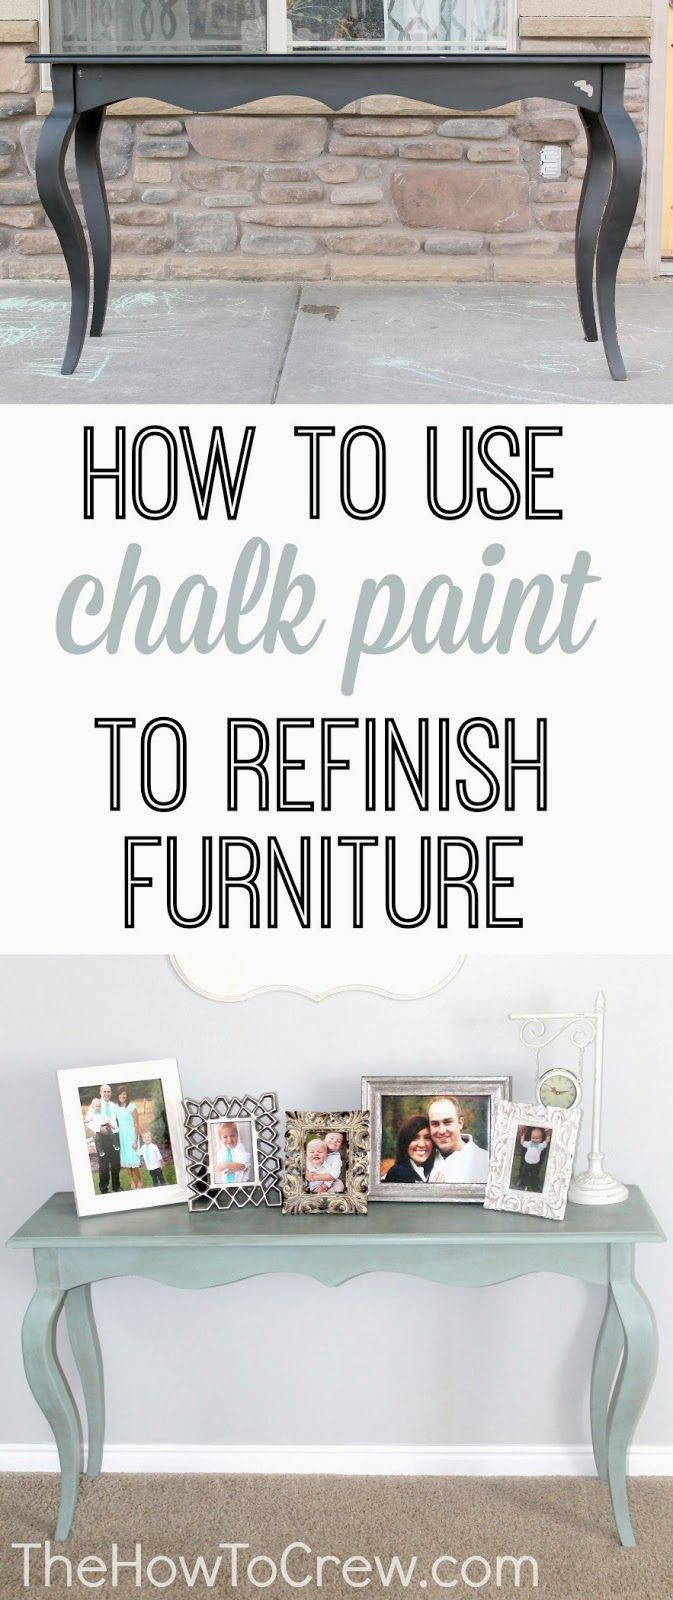 7 ways to not use chalkboard paint on a wall